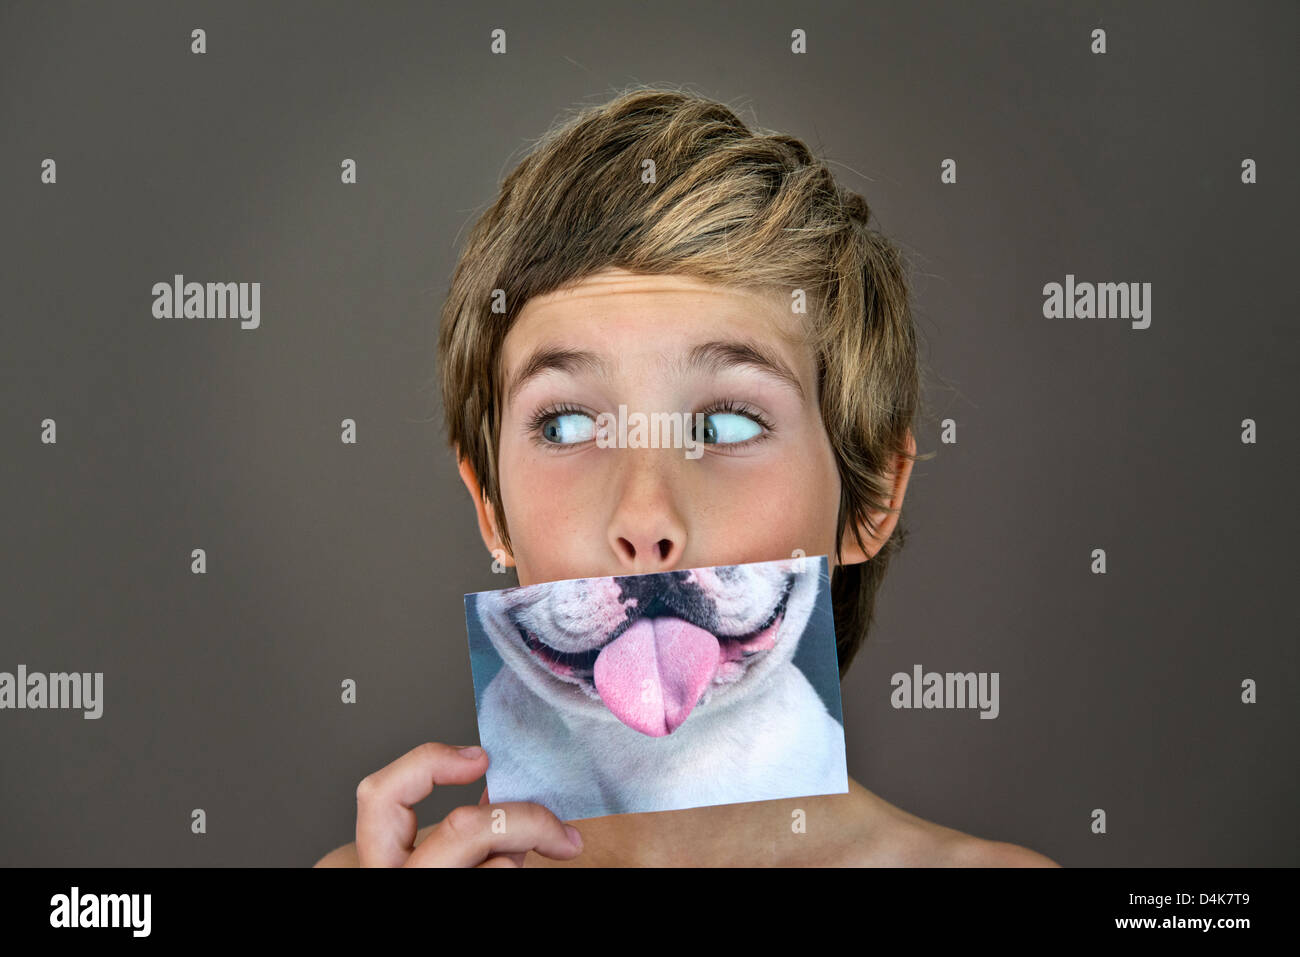 Boy holding picture of dog over face - Stock Image